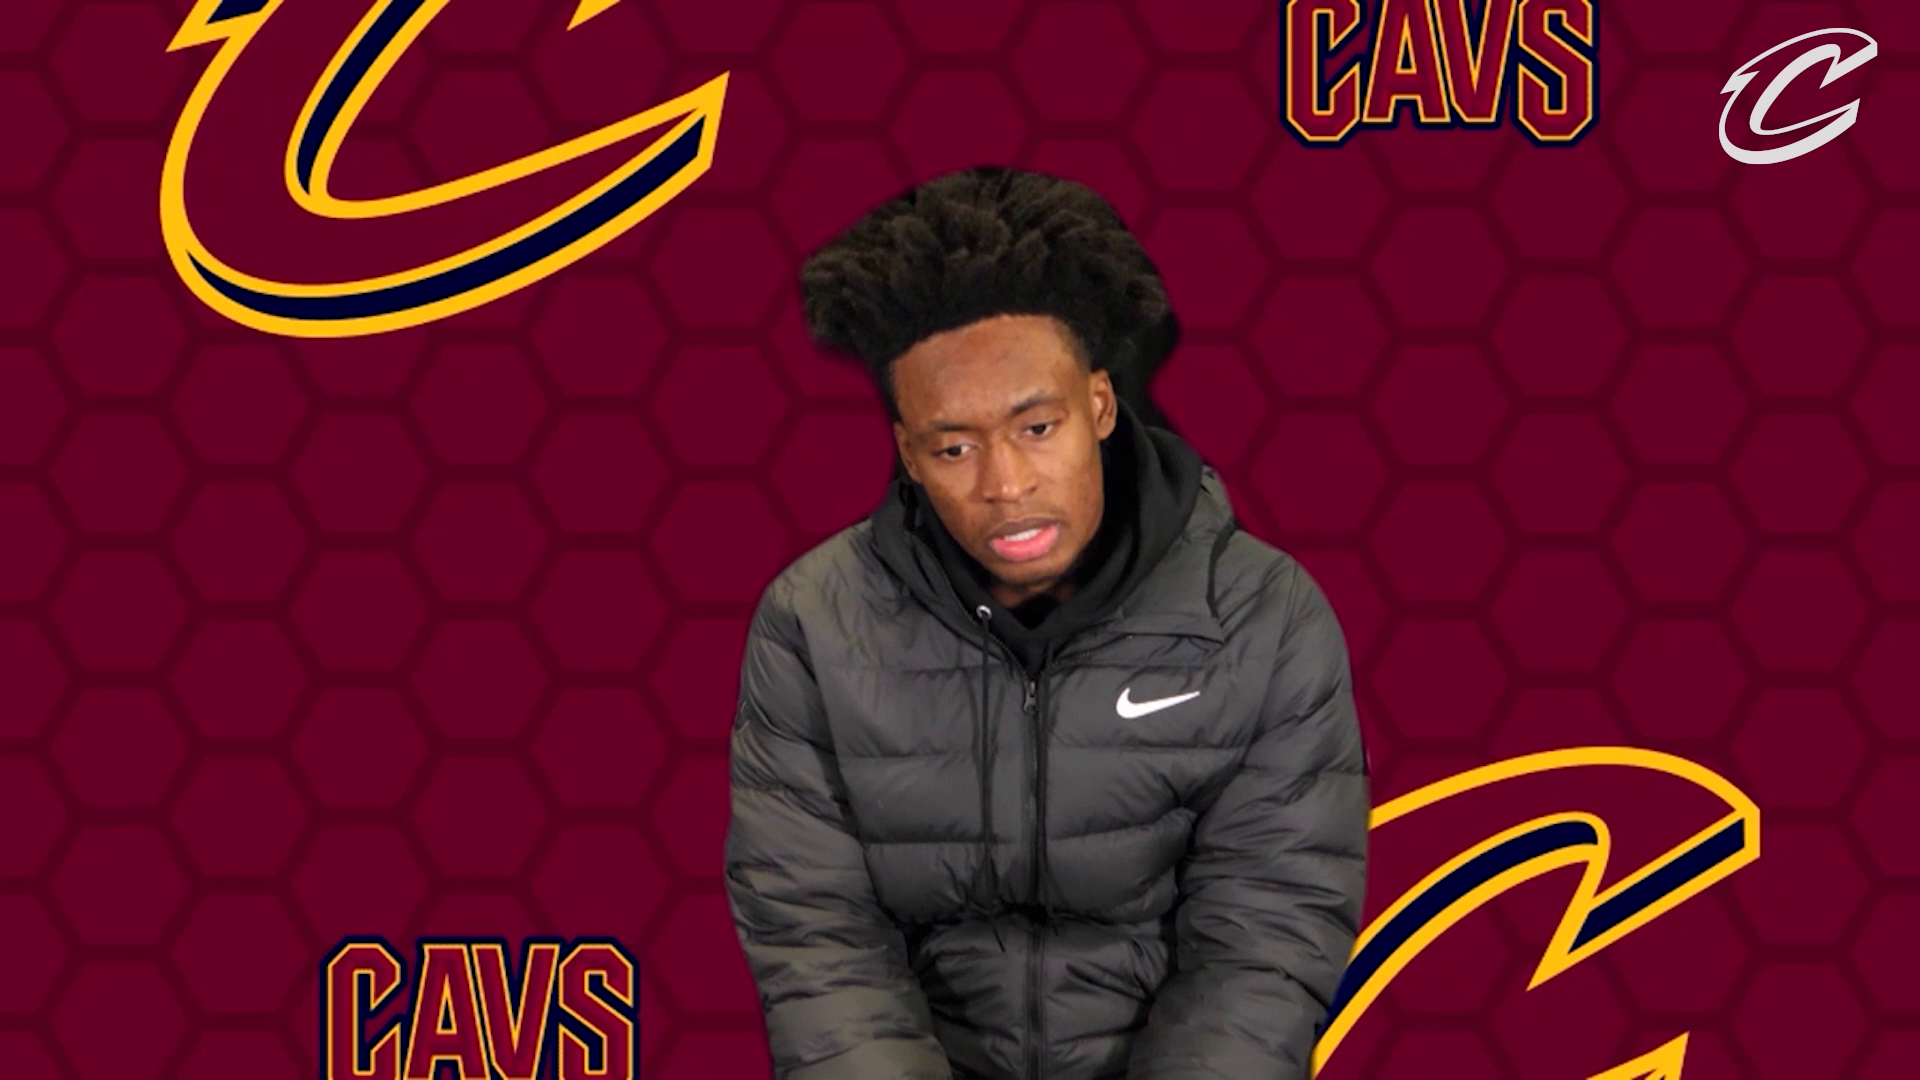 Cavs at Knicks Postgame: Collin Sexton